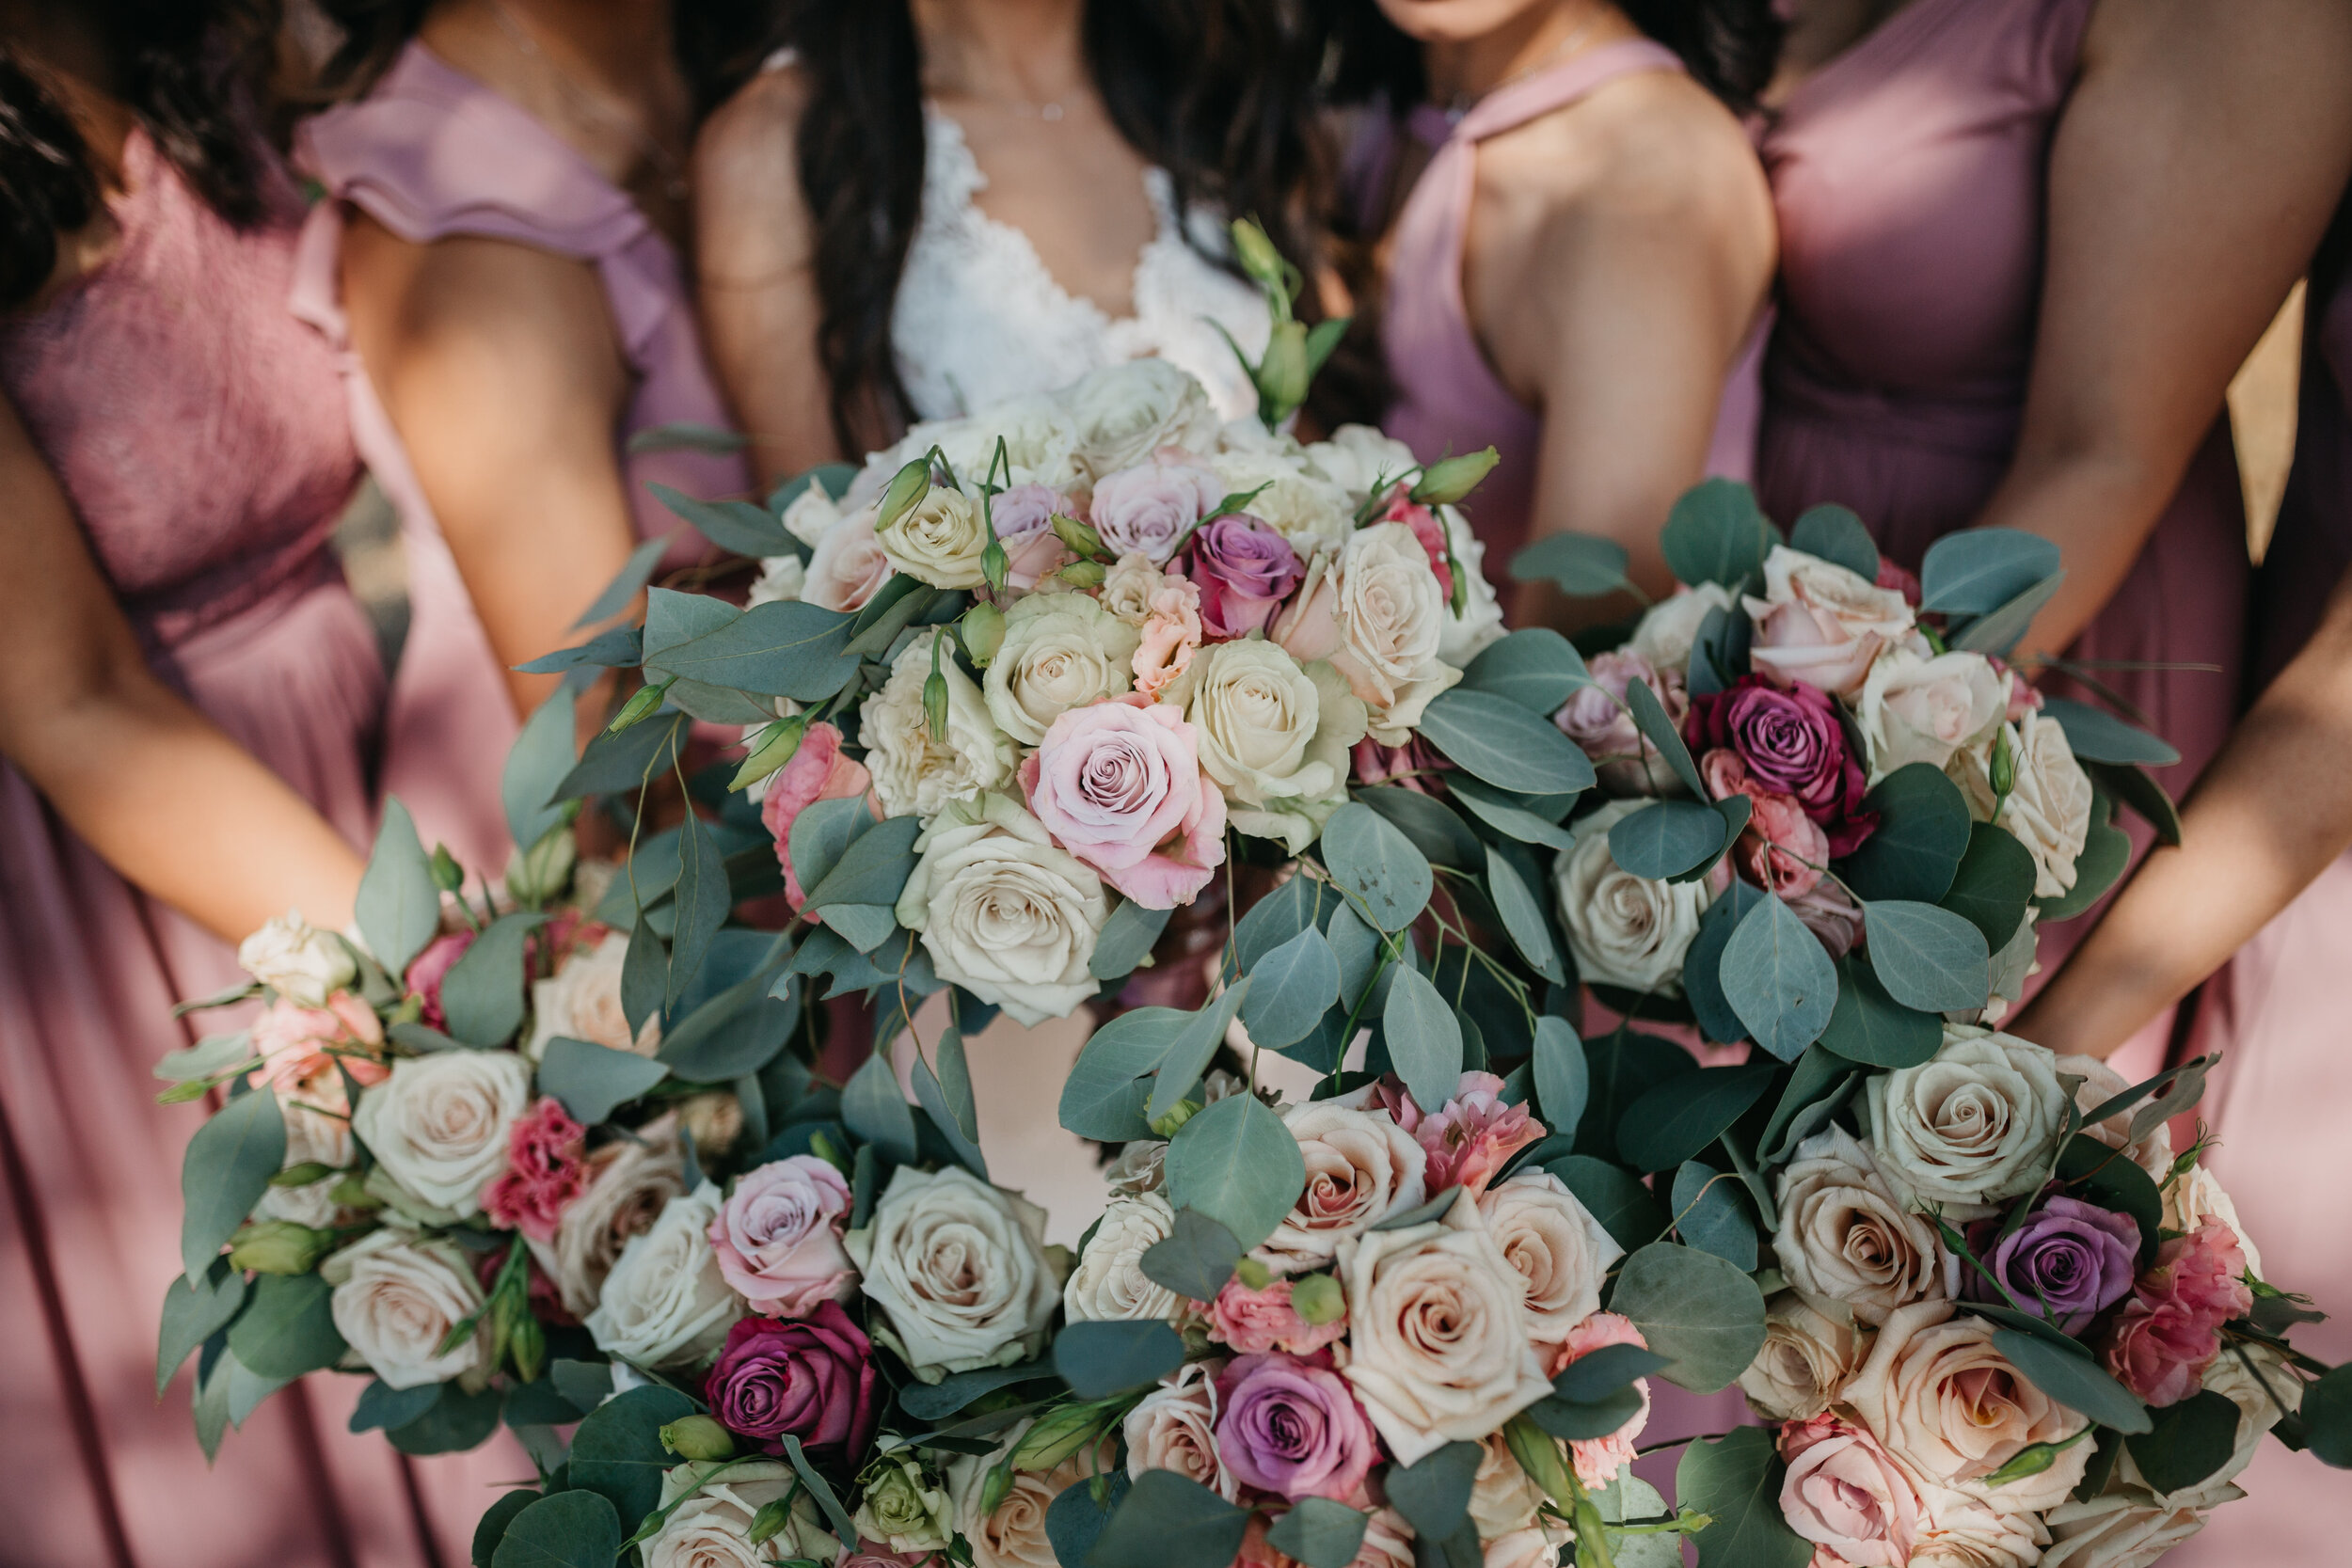 Bride and Maids, bouquets in leafy green eucalyptus with mauve, blush and white flower.  Photo by @whitneyjustesenphoto